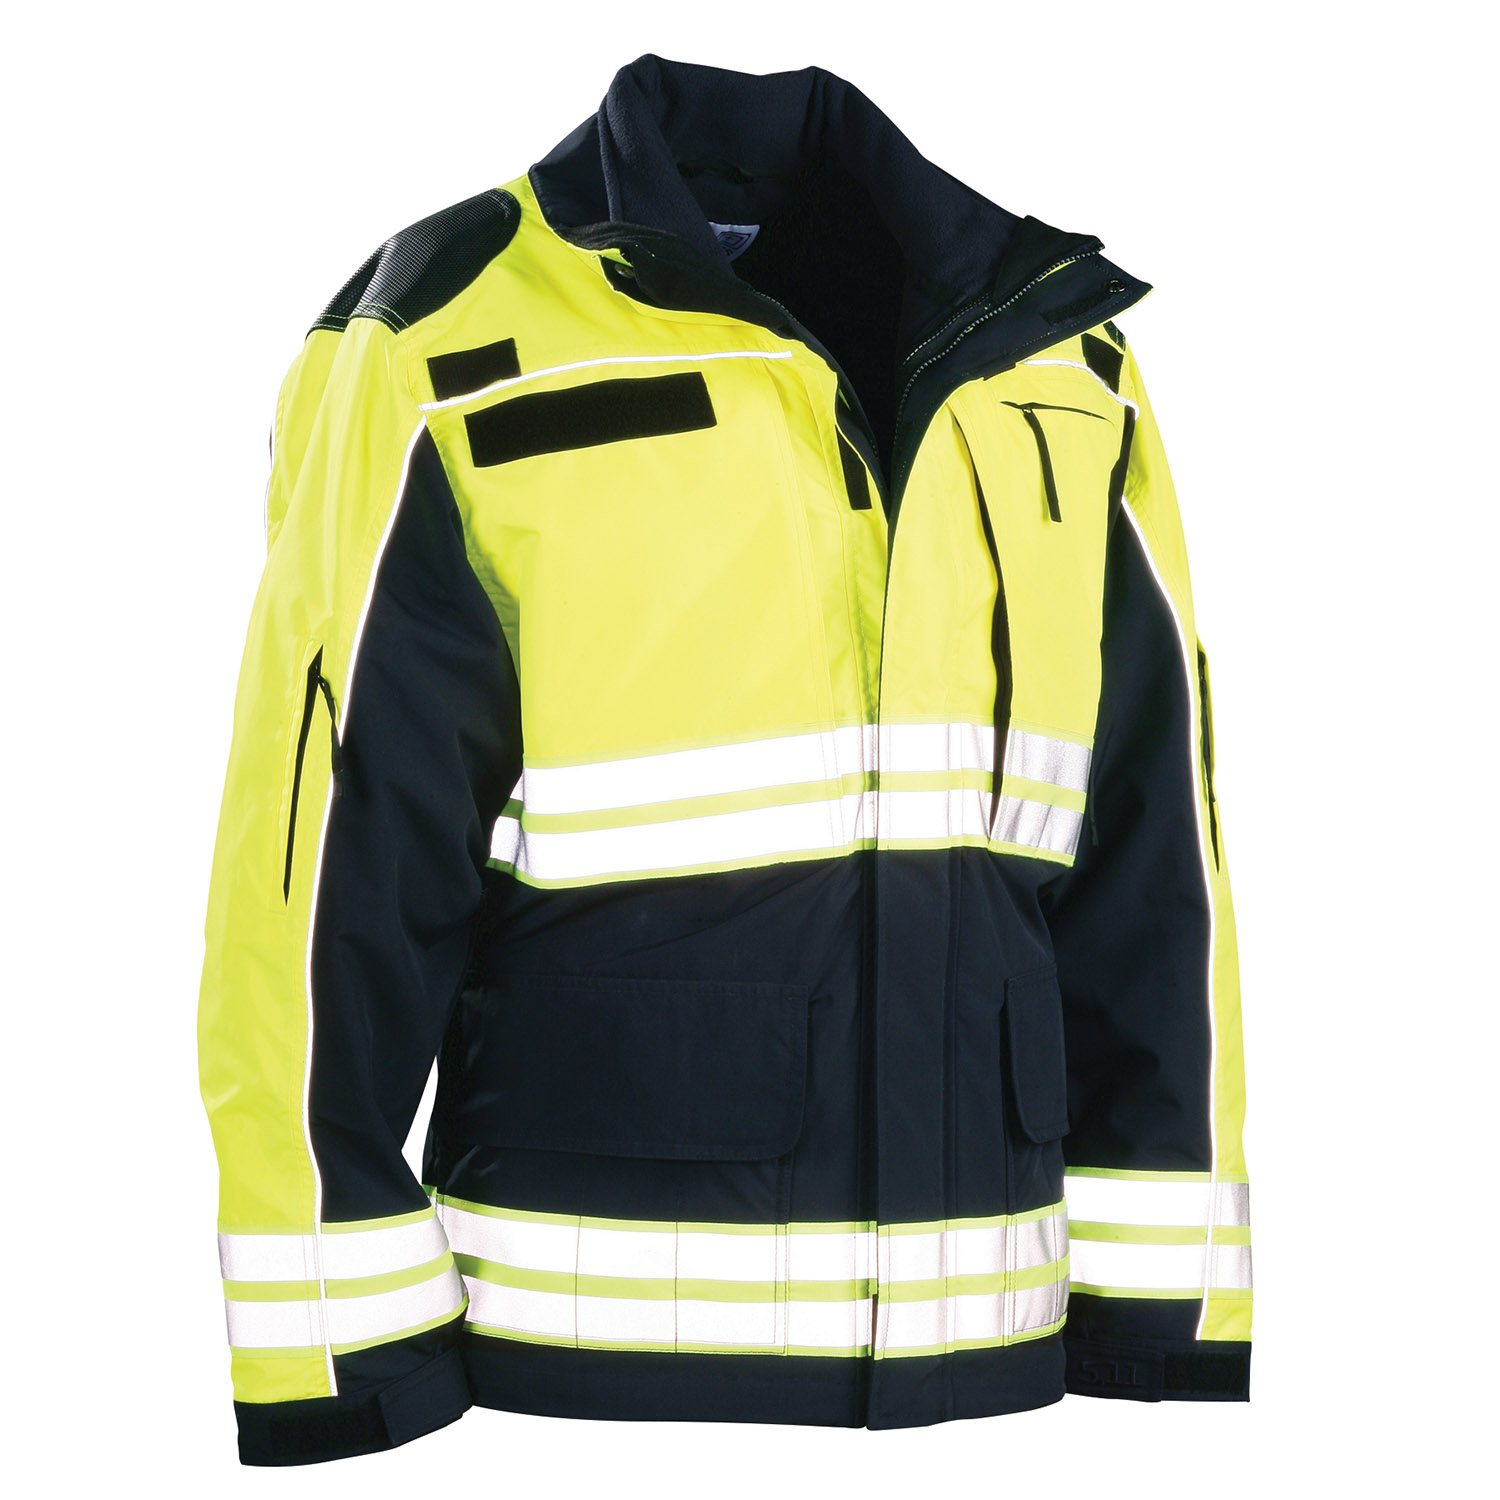 5.11 Tactical Men's Responder Hi Vis Parka